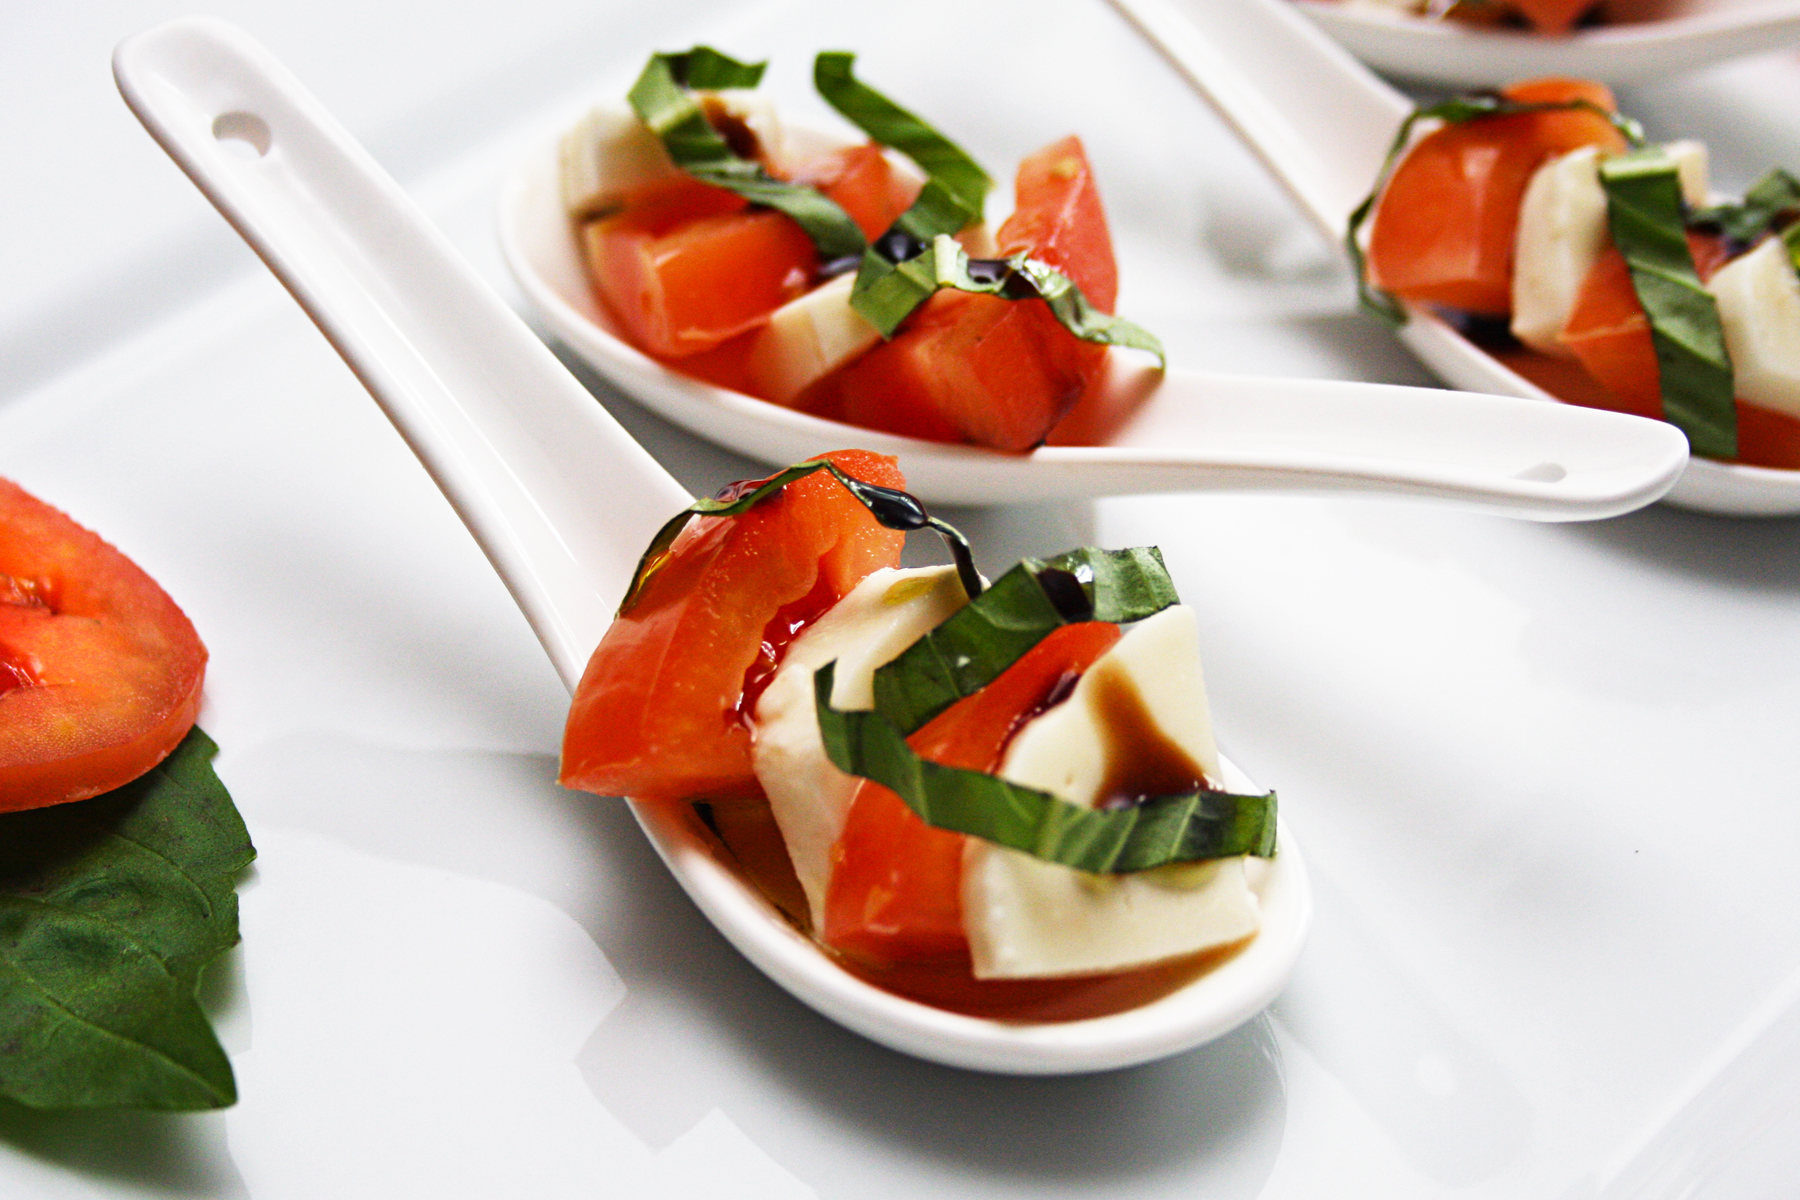 Caprese Salad Amuse Bouche Recipe Exploring Food  Drink in D.C.